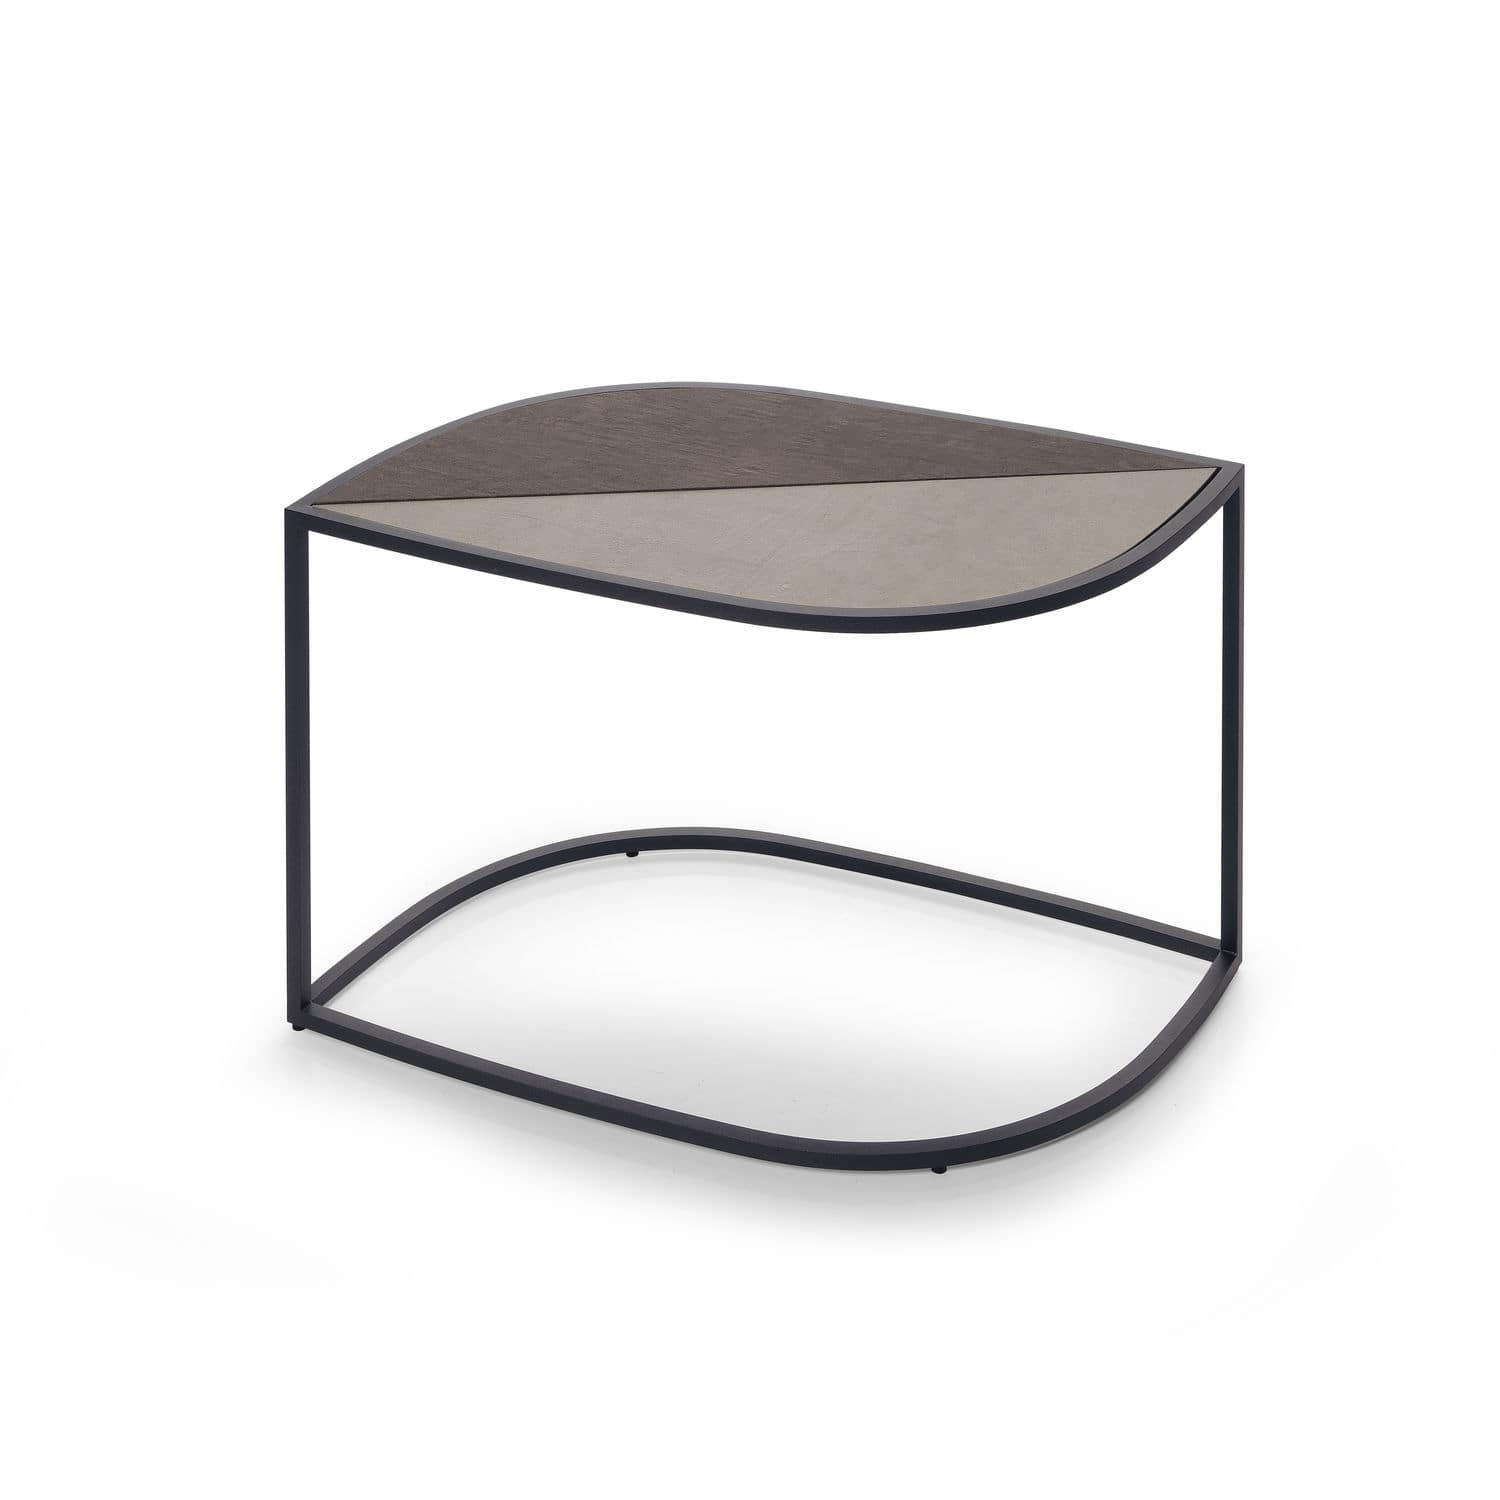 Contemporary Side Table Stainless Steel Garden White Leaf 001 By Gordon Guillaumier